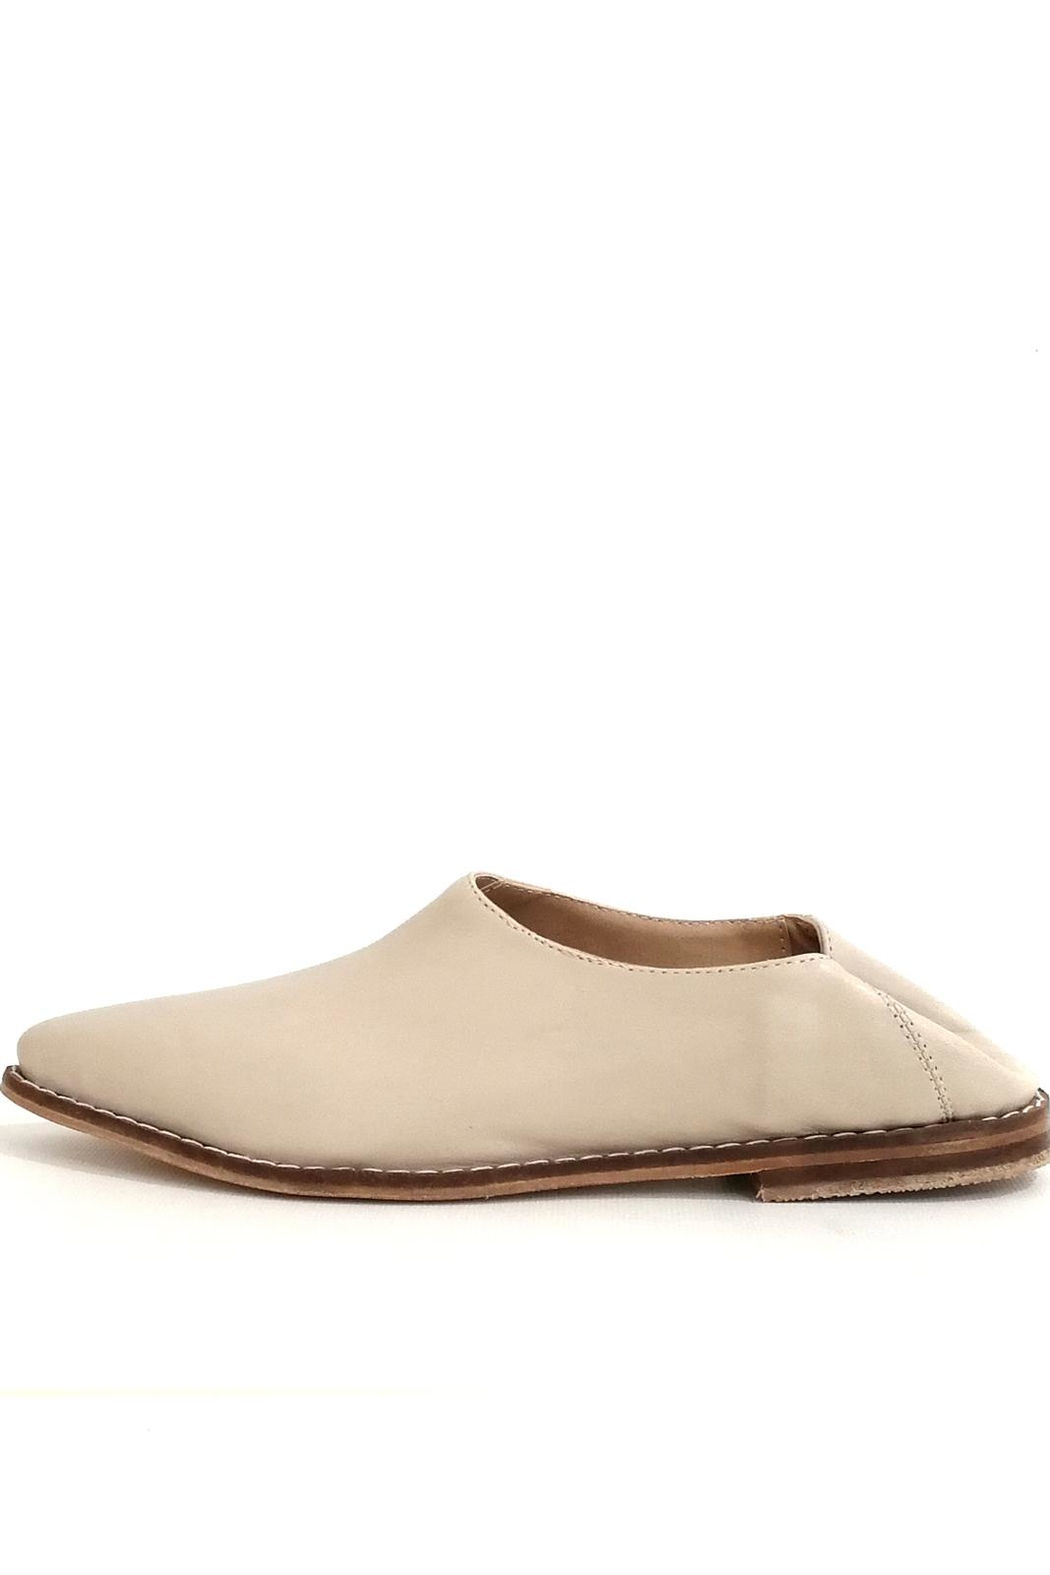 MIYE COLLAZZO Beige Mule Shoes - Front Full Image